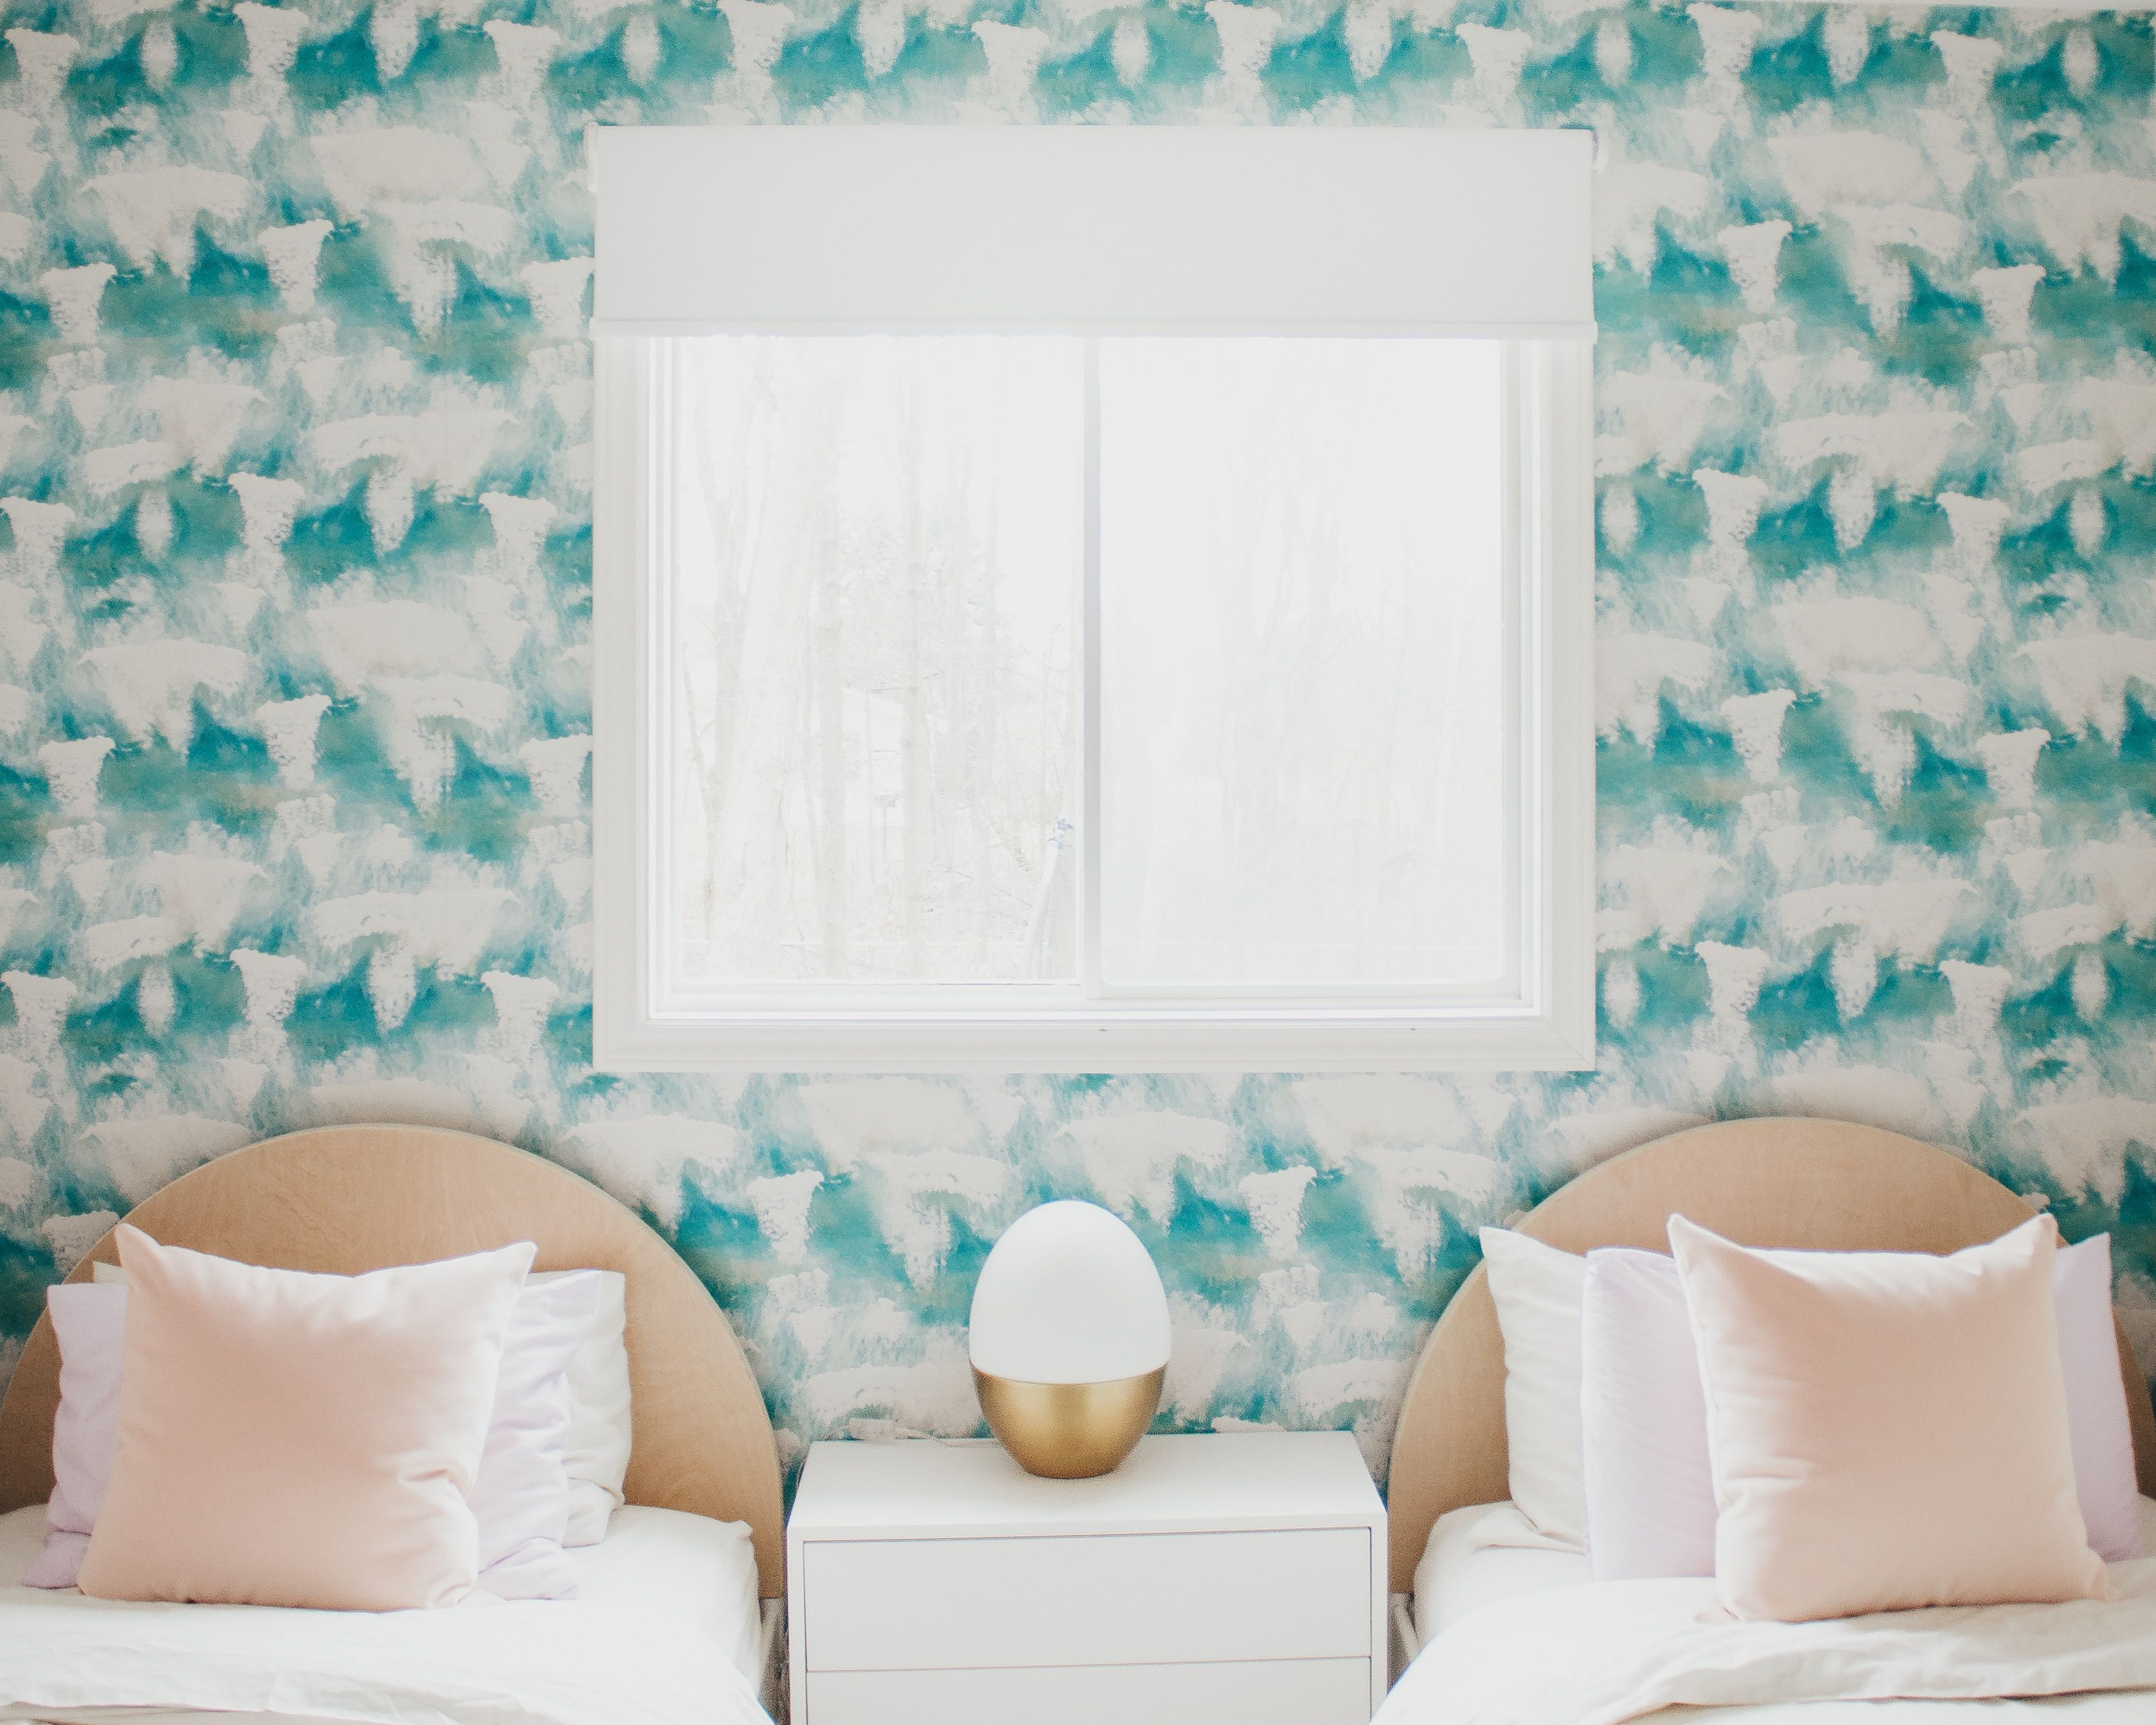 2020 Home Decor Trends: What's in and What's out?   Gray Malin